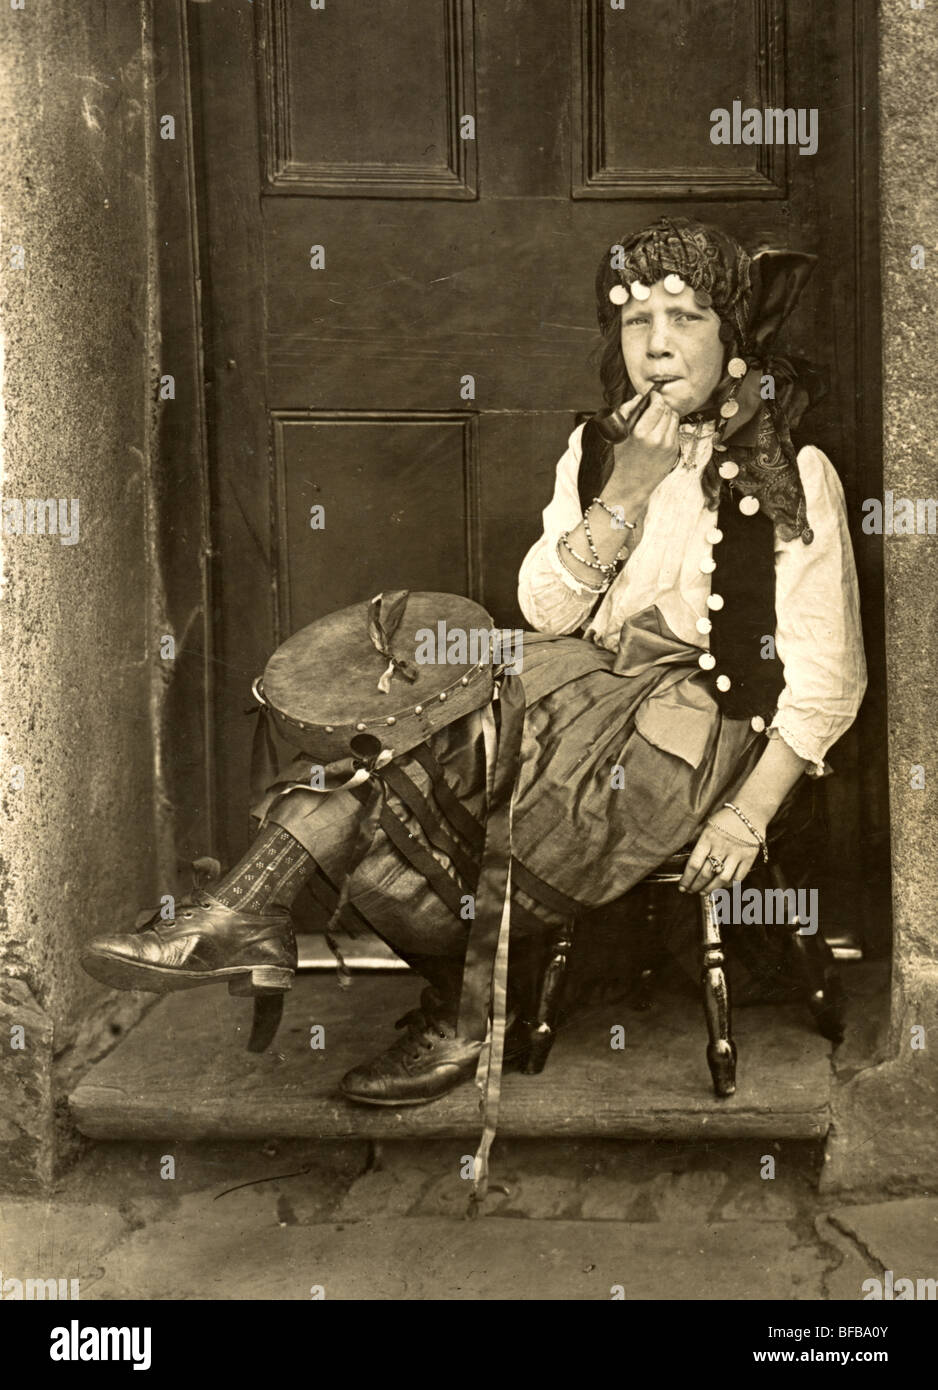 Pipe Smoking Little Gypsy Girl in Doorway - Stock Image